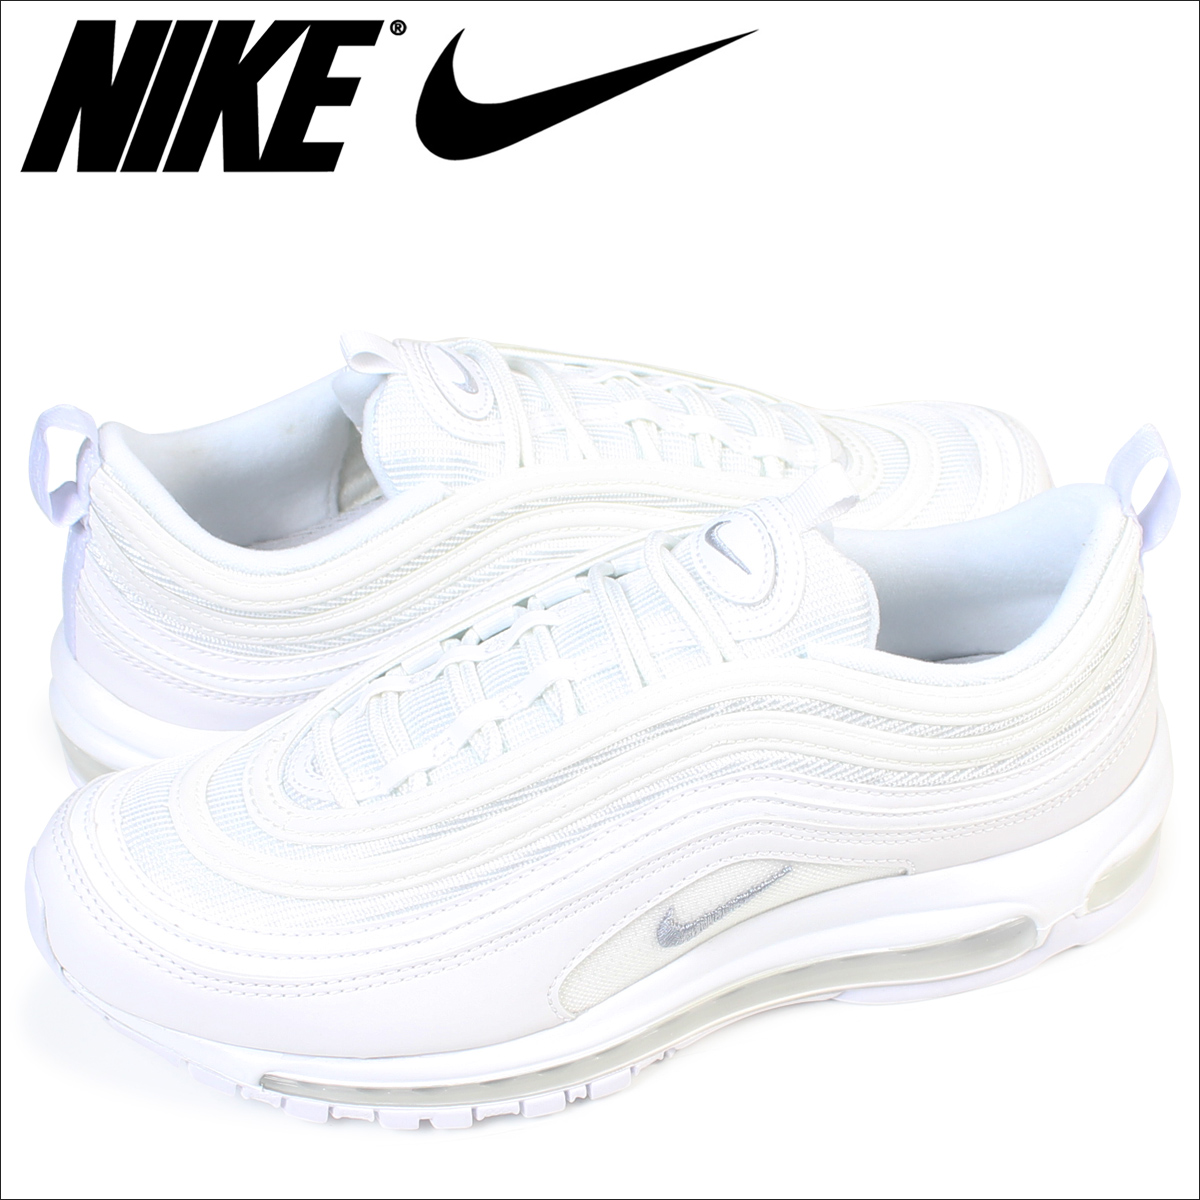 Cheap Nike Air Max 97 White Activate Learning Reading College